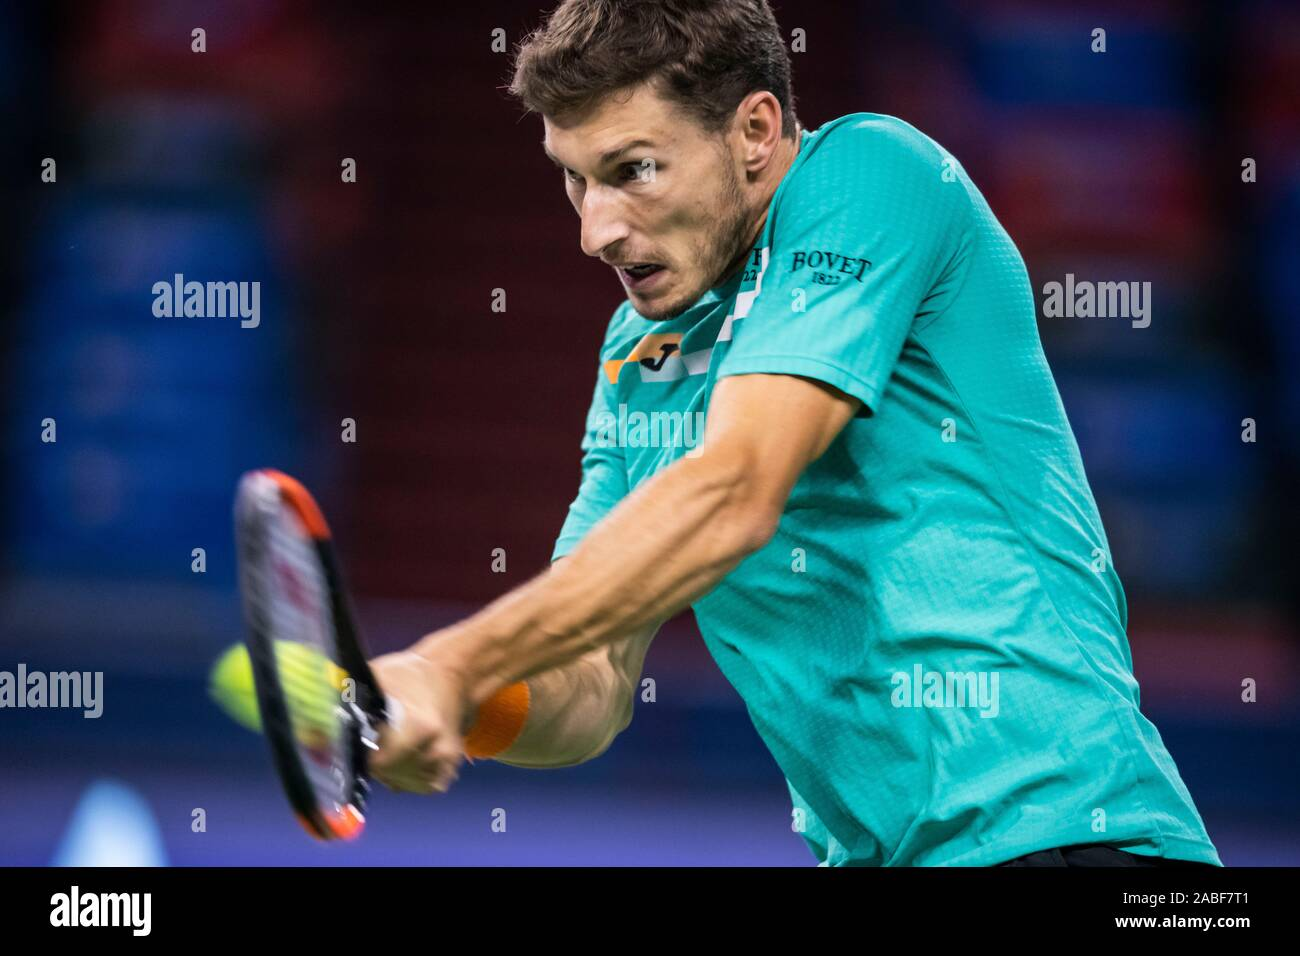 Spanish professional tennis player Pablo Carreno Busta competes against Chinese professional tennis player Zhang Ze during the first round of 2019 Rol Stock Photo